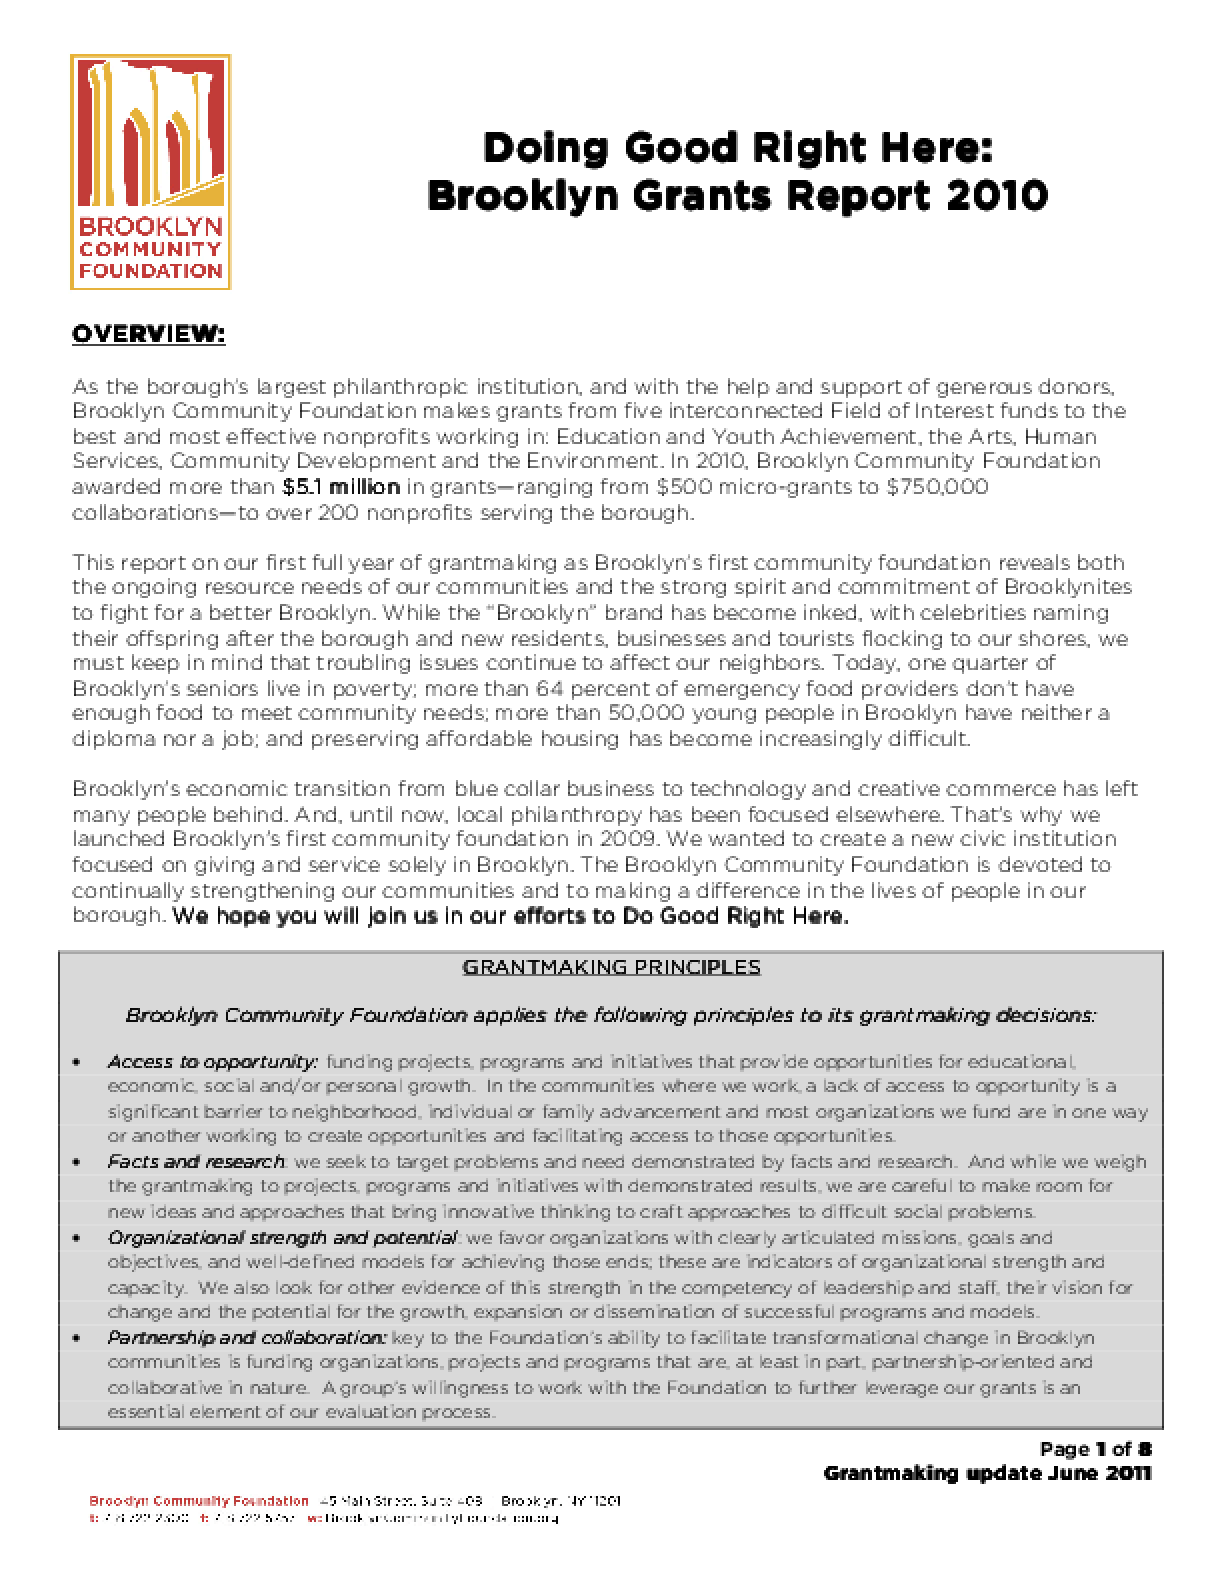 Doing Good Right Here: Brooklyn Grants Report 2010